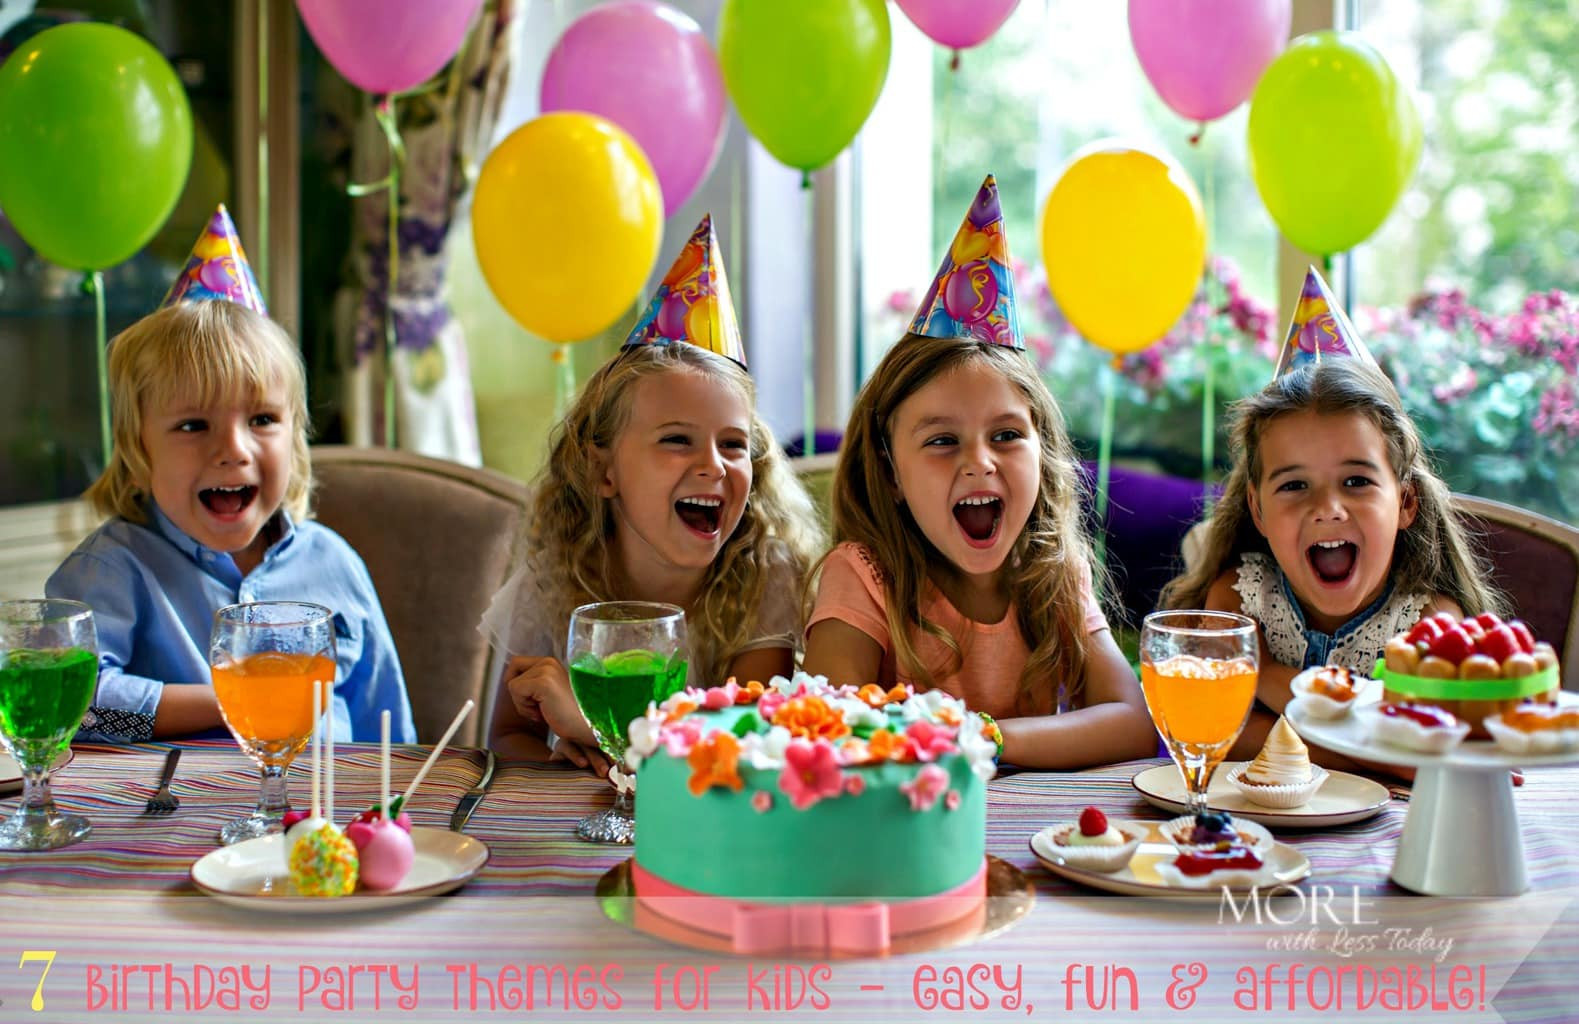 Birthday Party Themes For Kids  Fun and Inexpensive Theme Ideas for Kids Birthday Parties